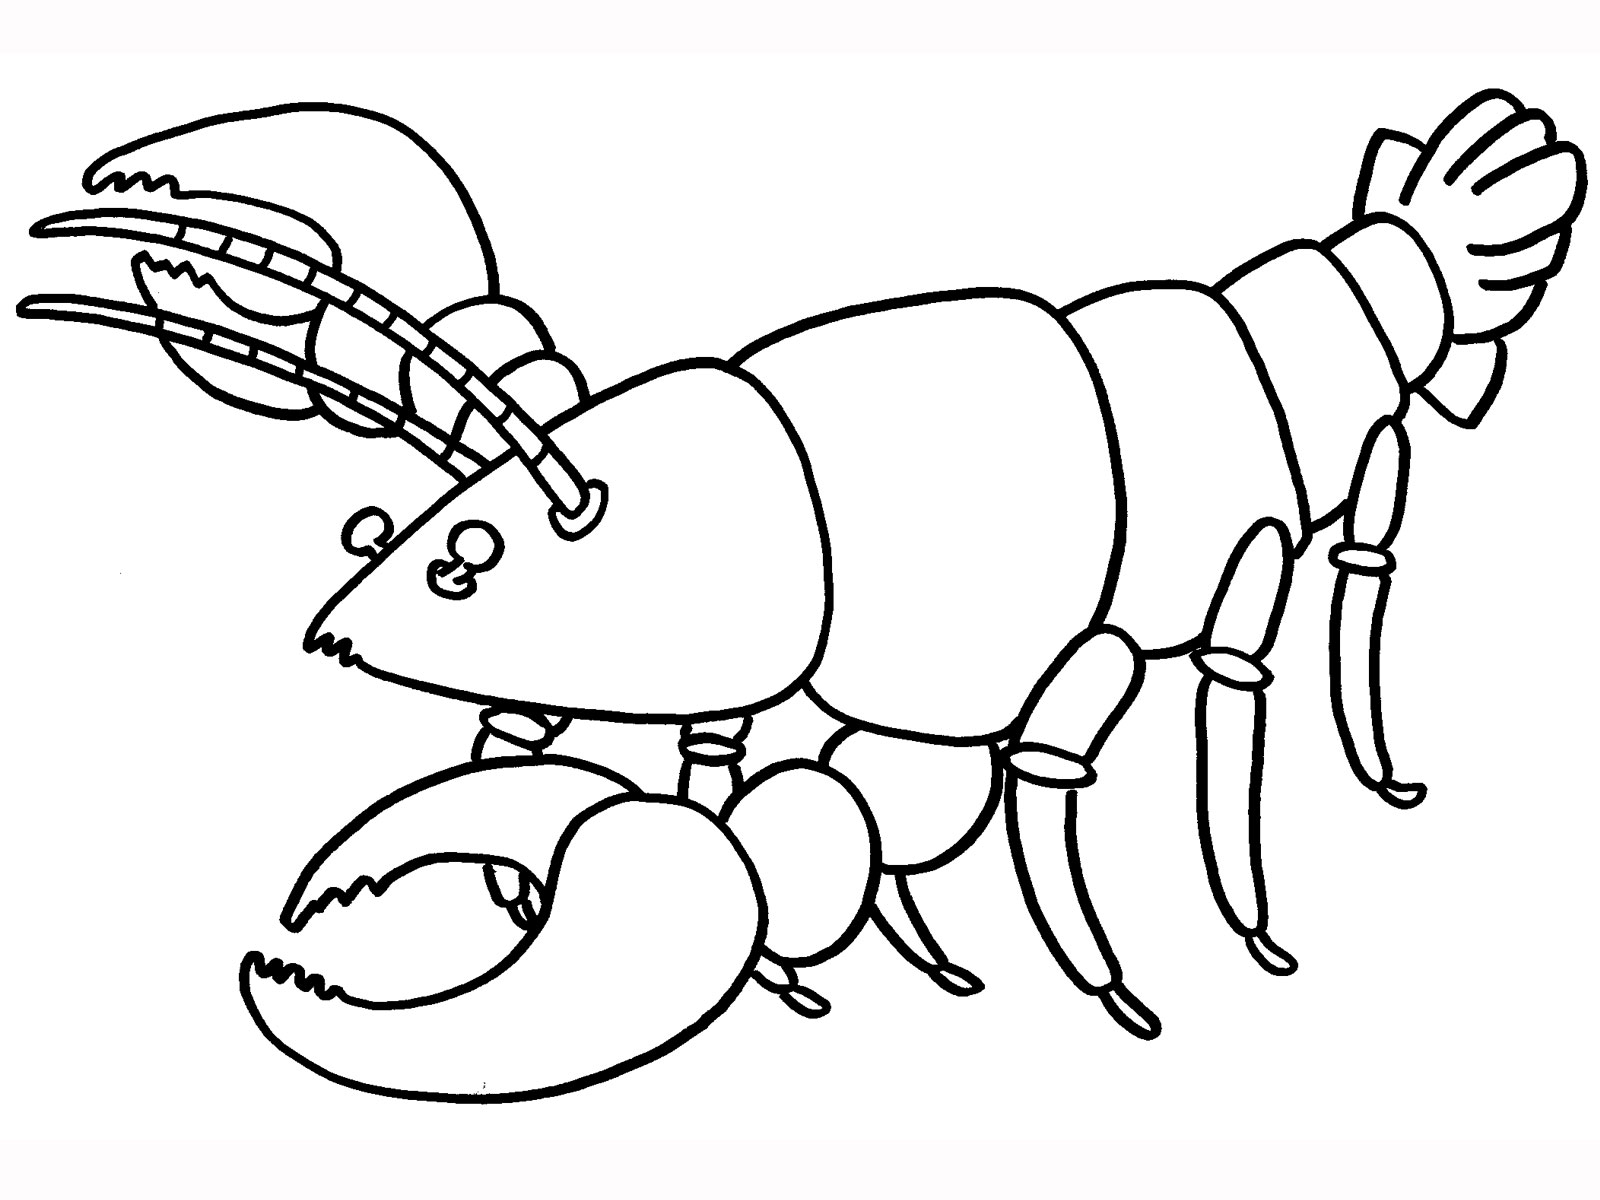 lobster coloring page clawed lobster coloring page free printable coloring pages page coloring lobster